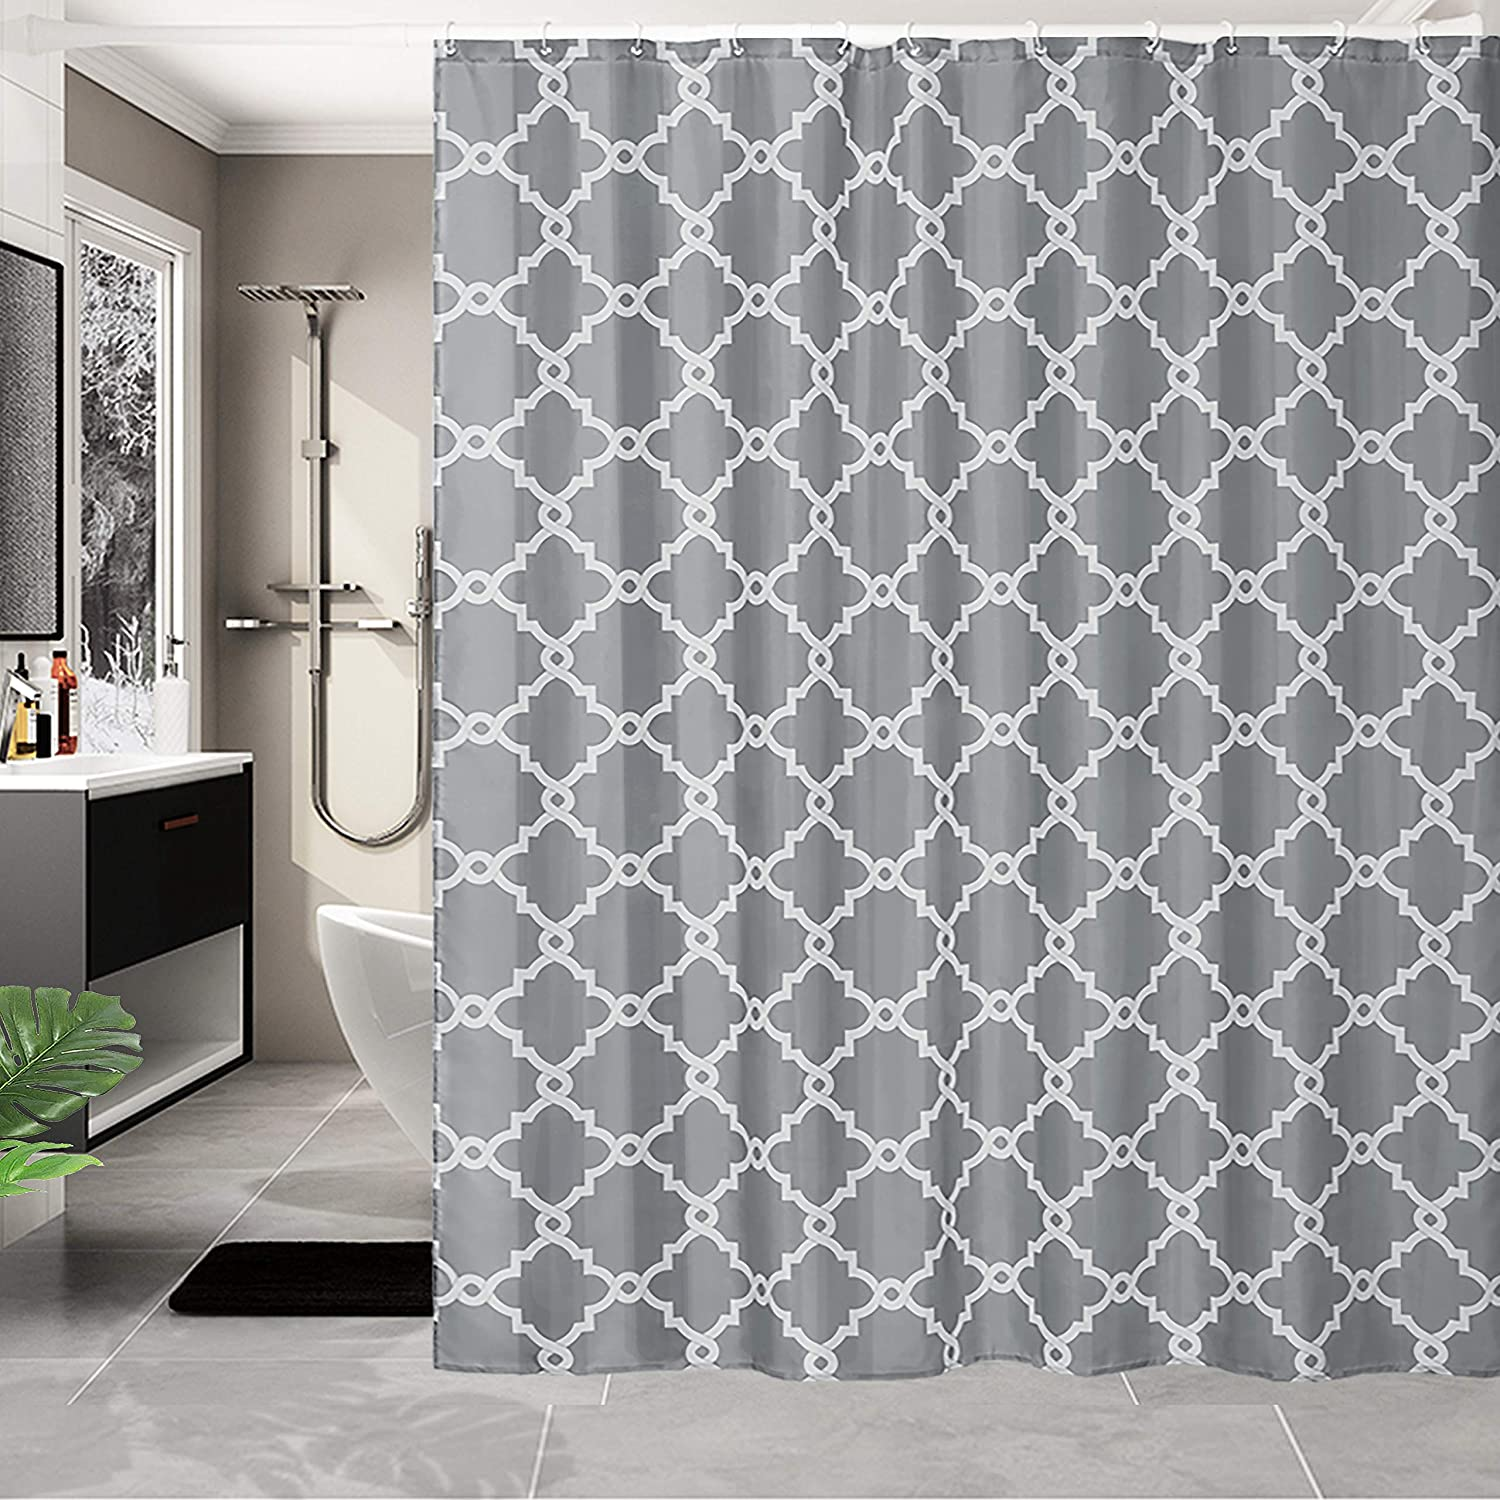 WELTRXE Shower Curtains Mold-free Mildew Resistant Bath Curtain Washable Waterproof Polyester Fabric Bathroom Curtains with 12 Hooks, 180 x 180 cm, Grey Grey Geometric